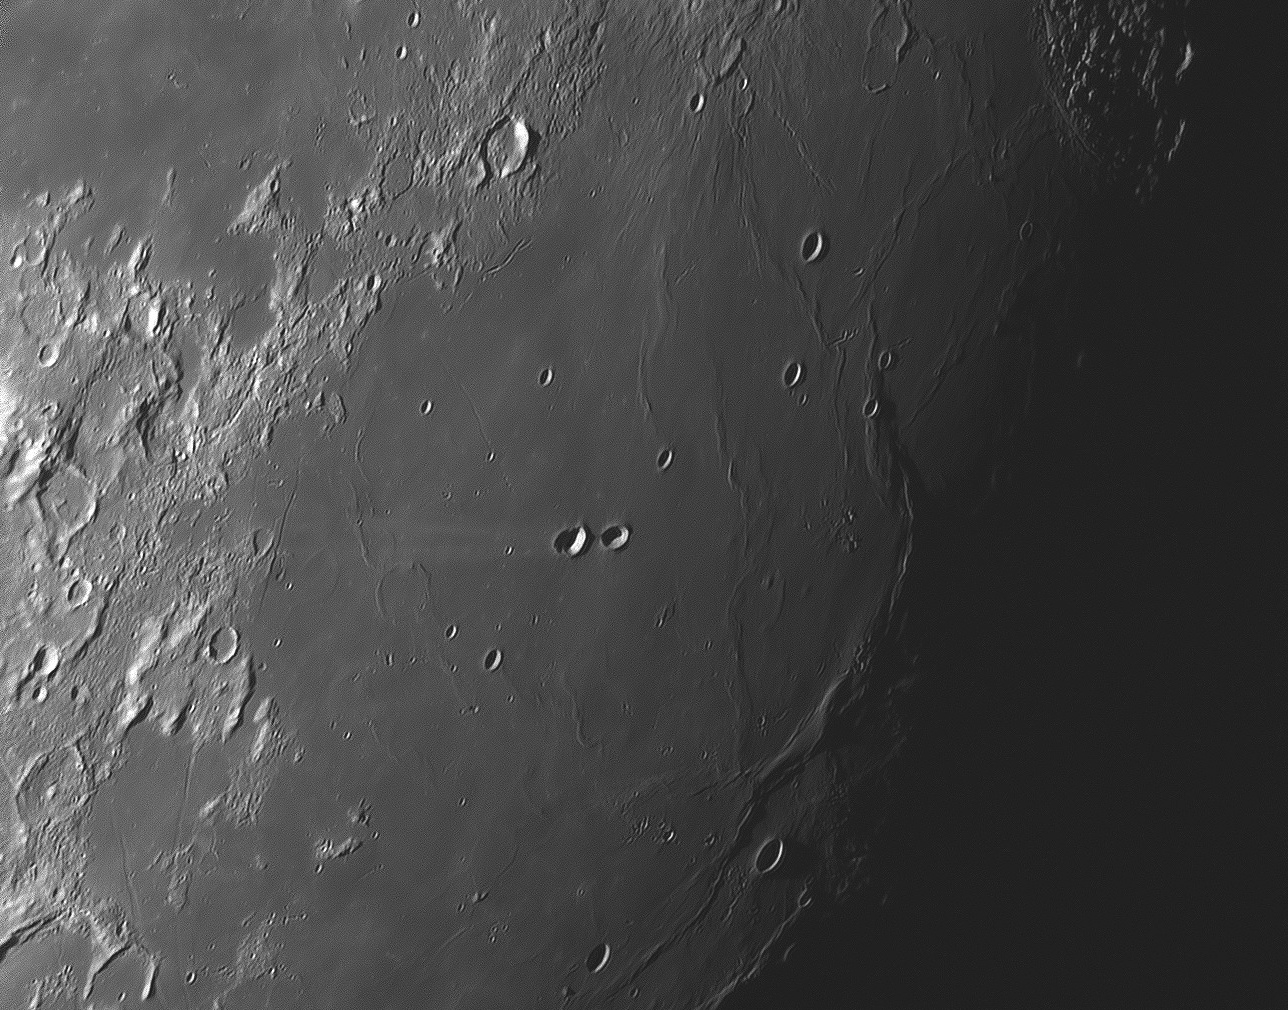 MESSIER 17 09 19 03 11 41  copie.jpg